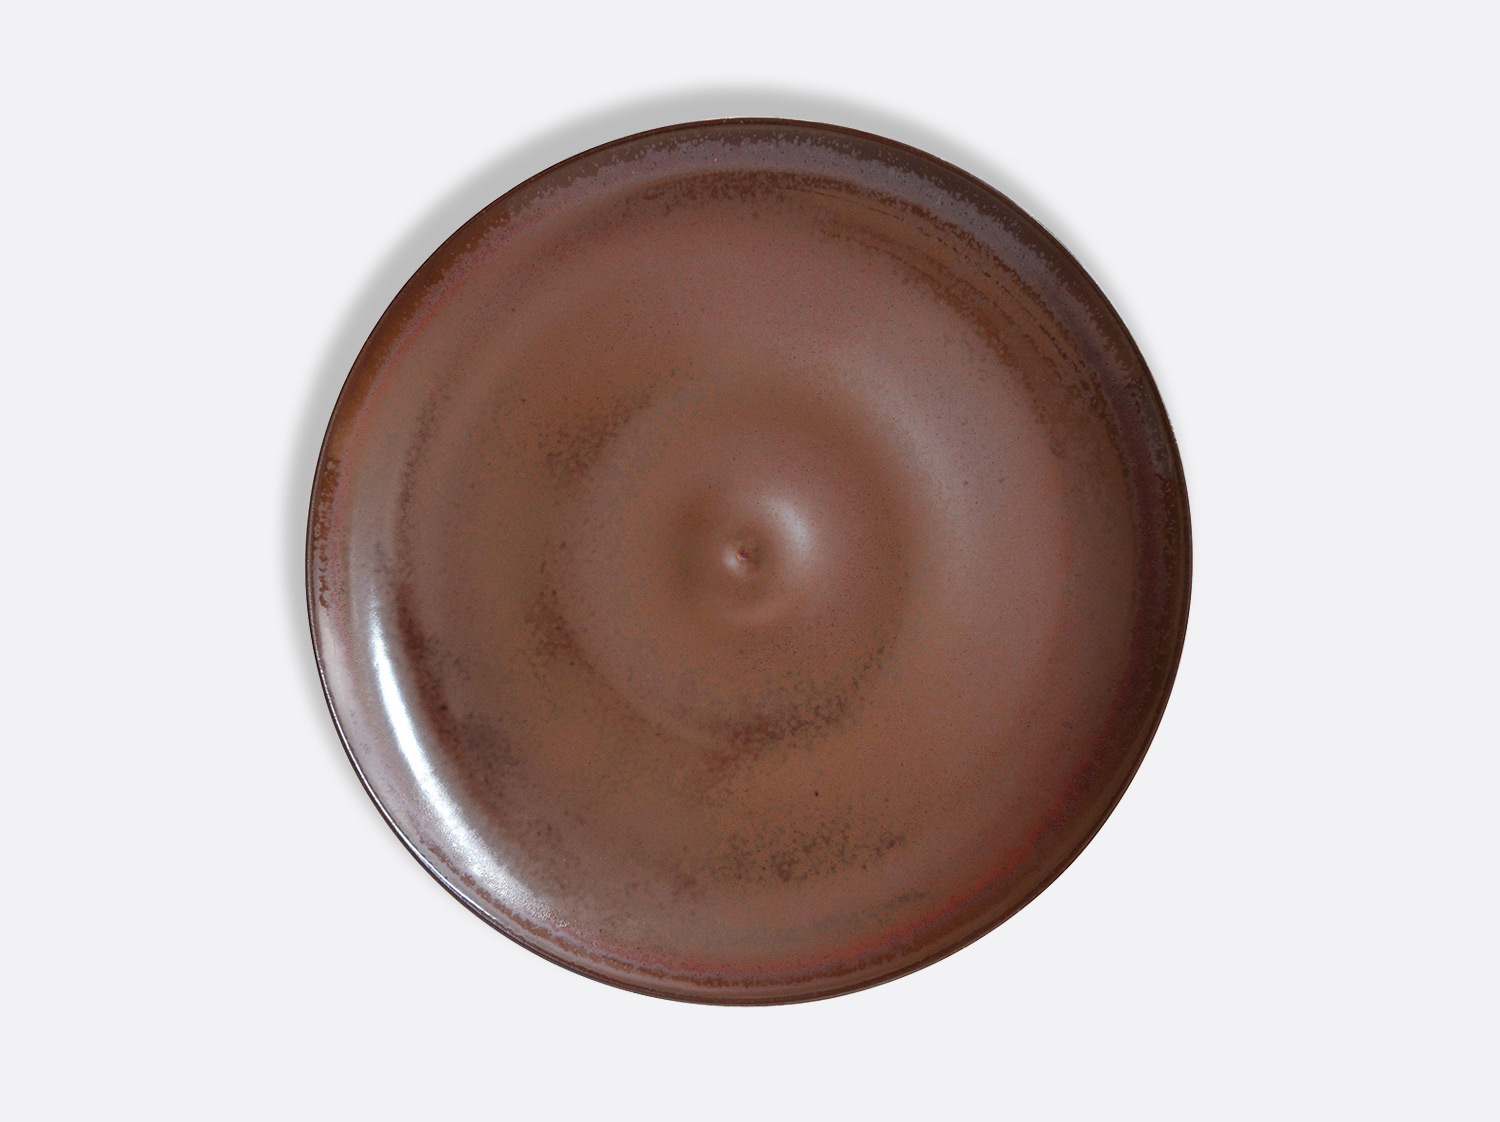 Assiette Bulle Castanon 27 cm en porcelaine de la collection Castanon Bernardaud